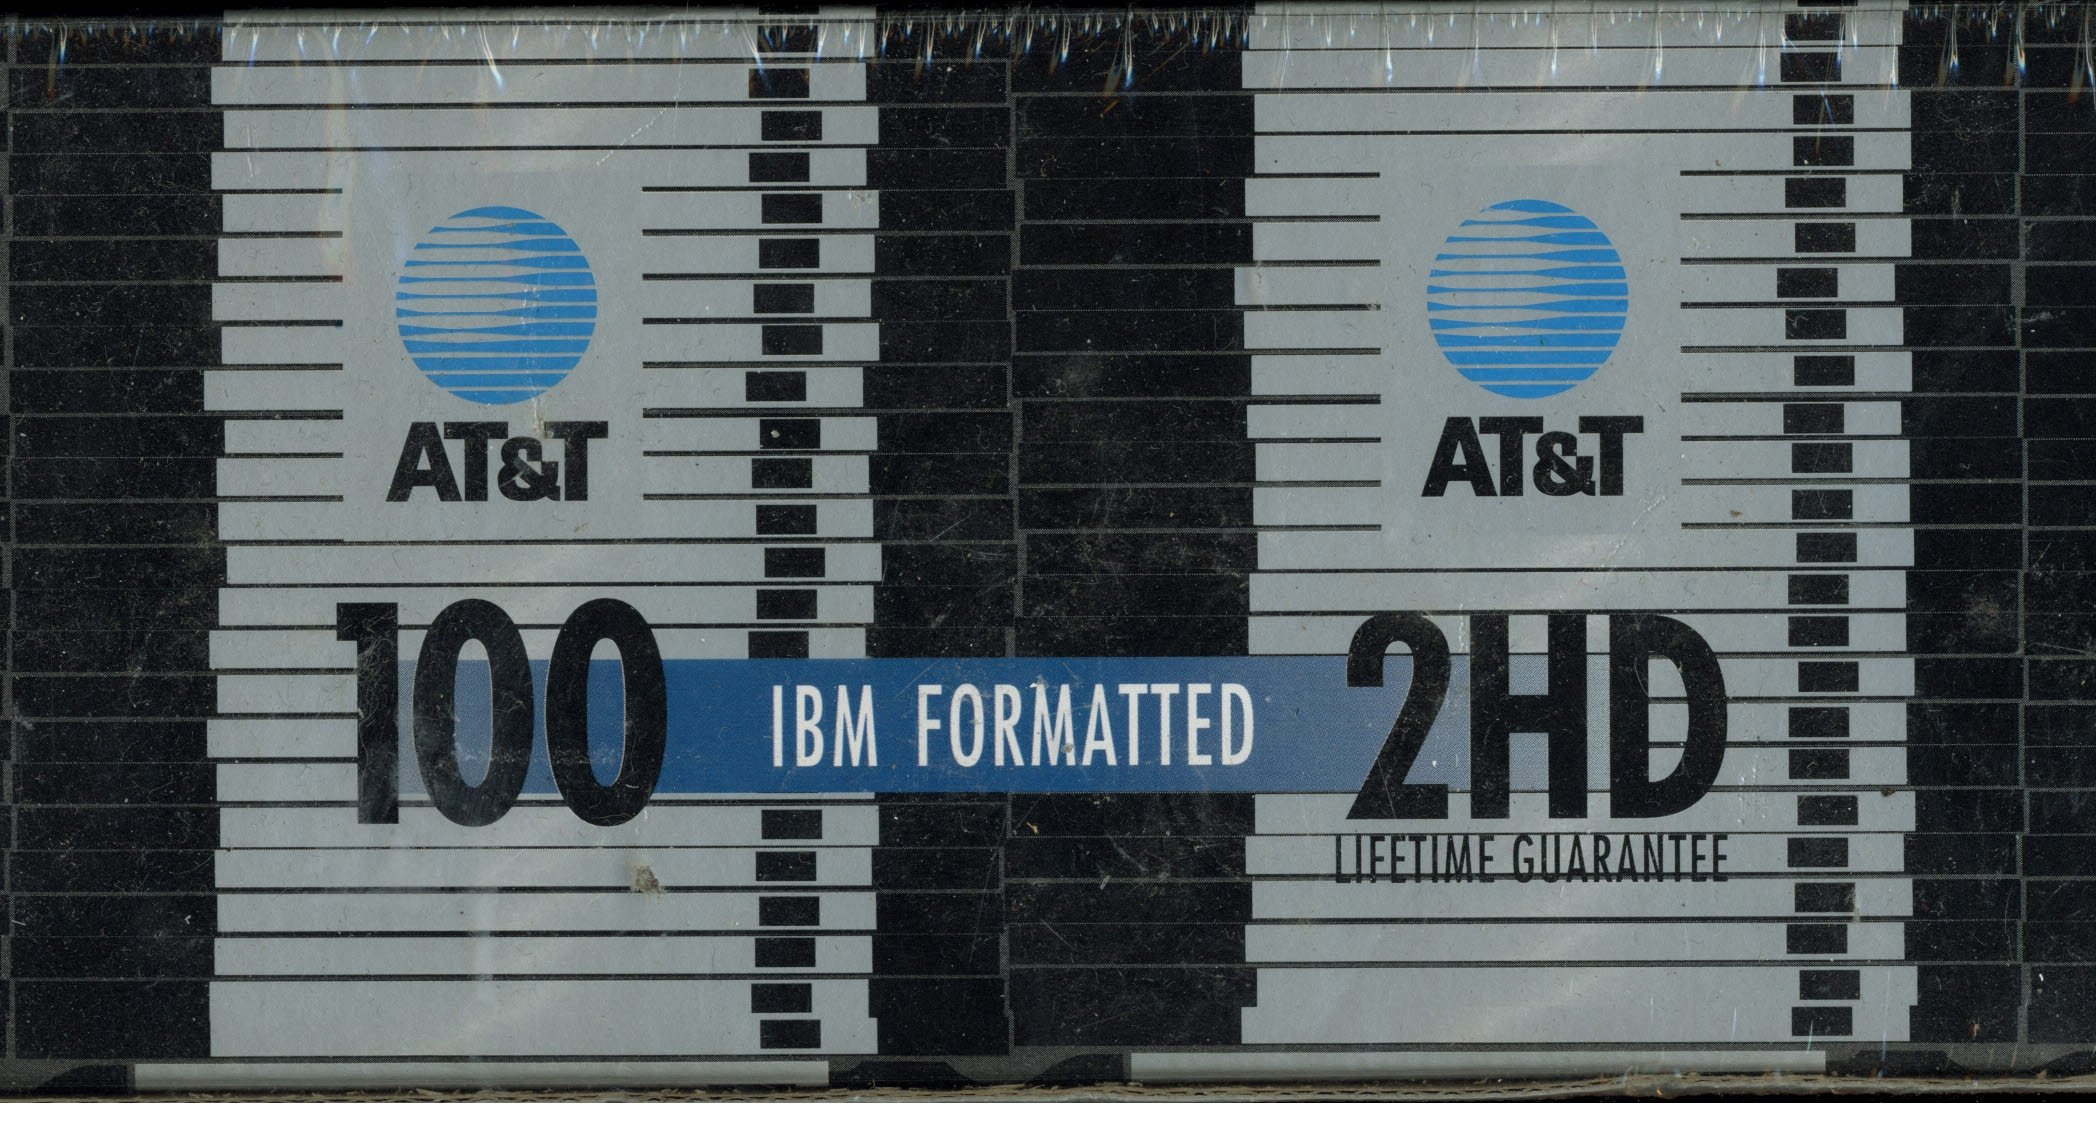 AT&T IBM Formatted 3.5 Inch DS/HD Floppy Diskettes 100 Pack 2HD by AT&T